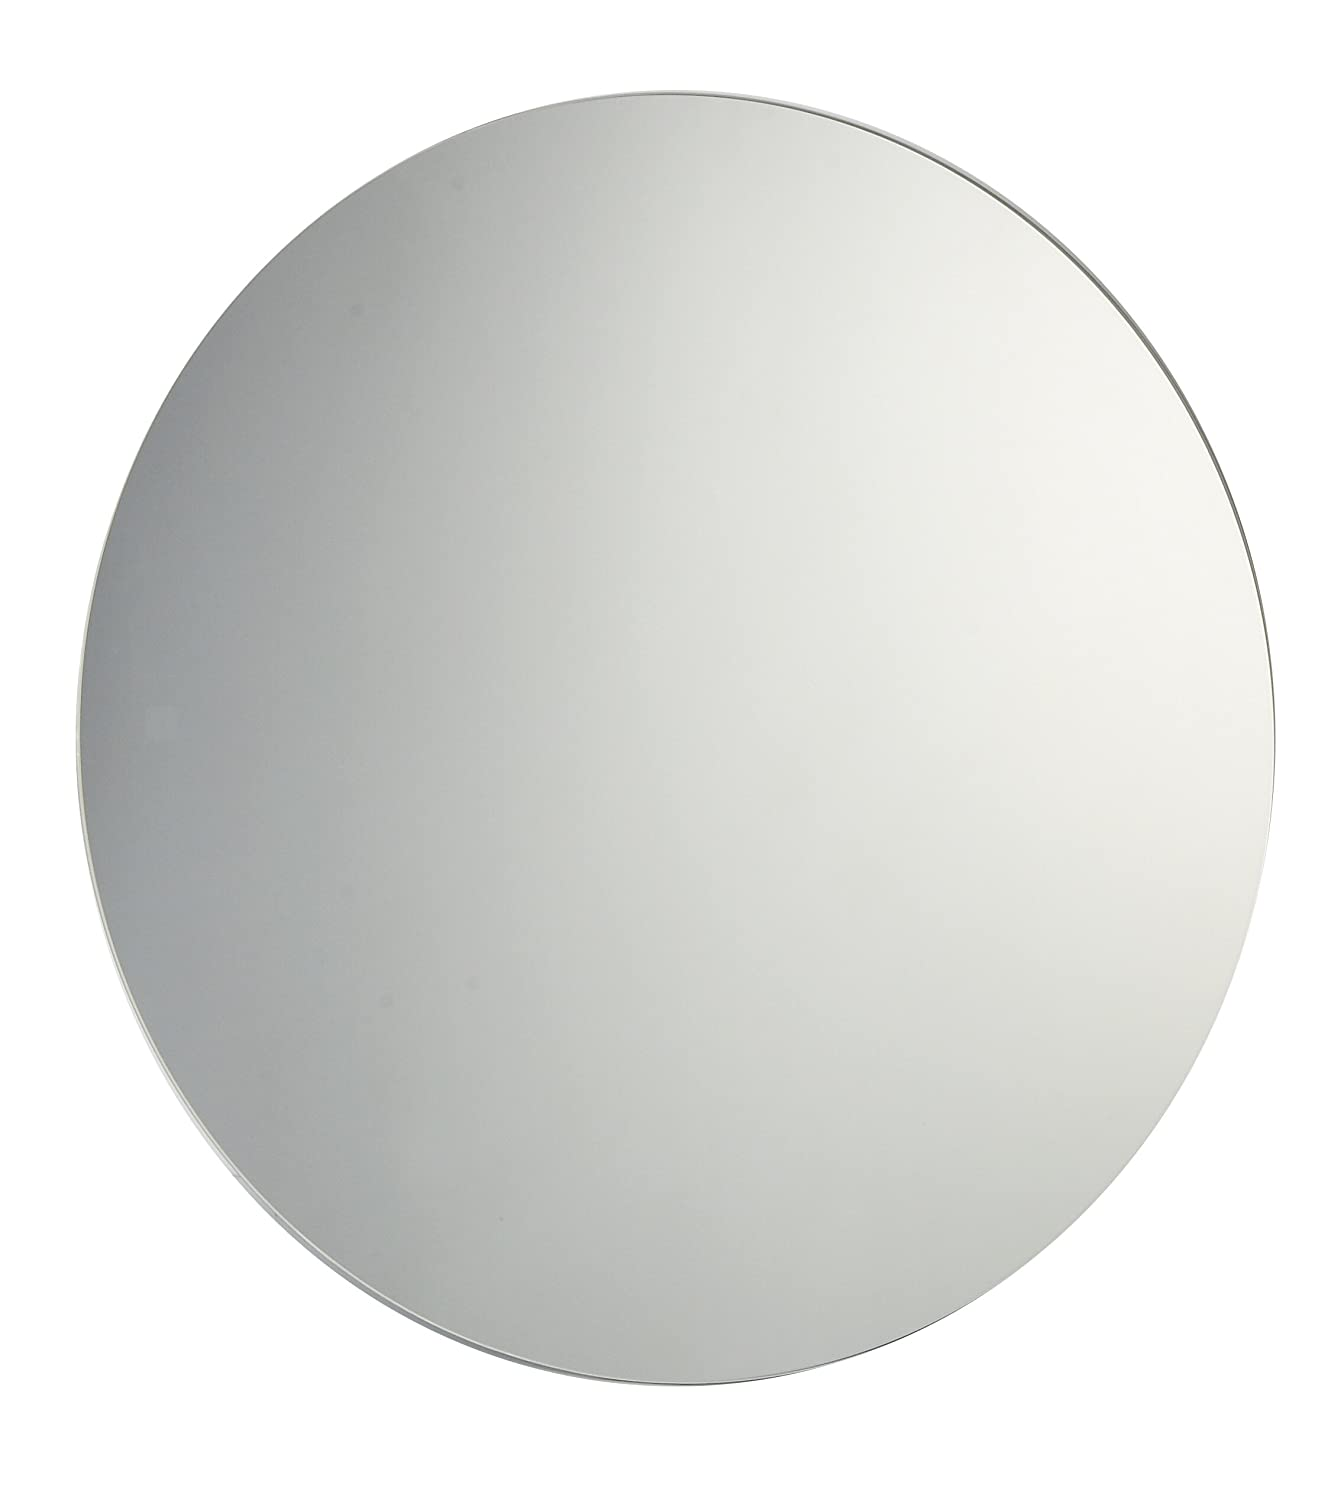 60cm diameter plain frameless circular bathroom mirror with chrome effect metal spring loaded wall hanging fixing